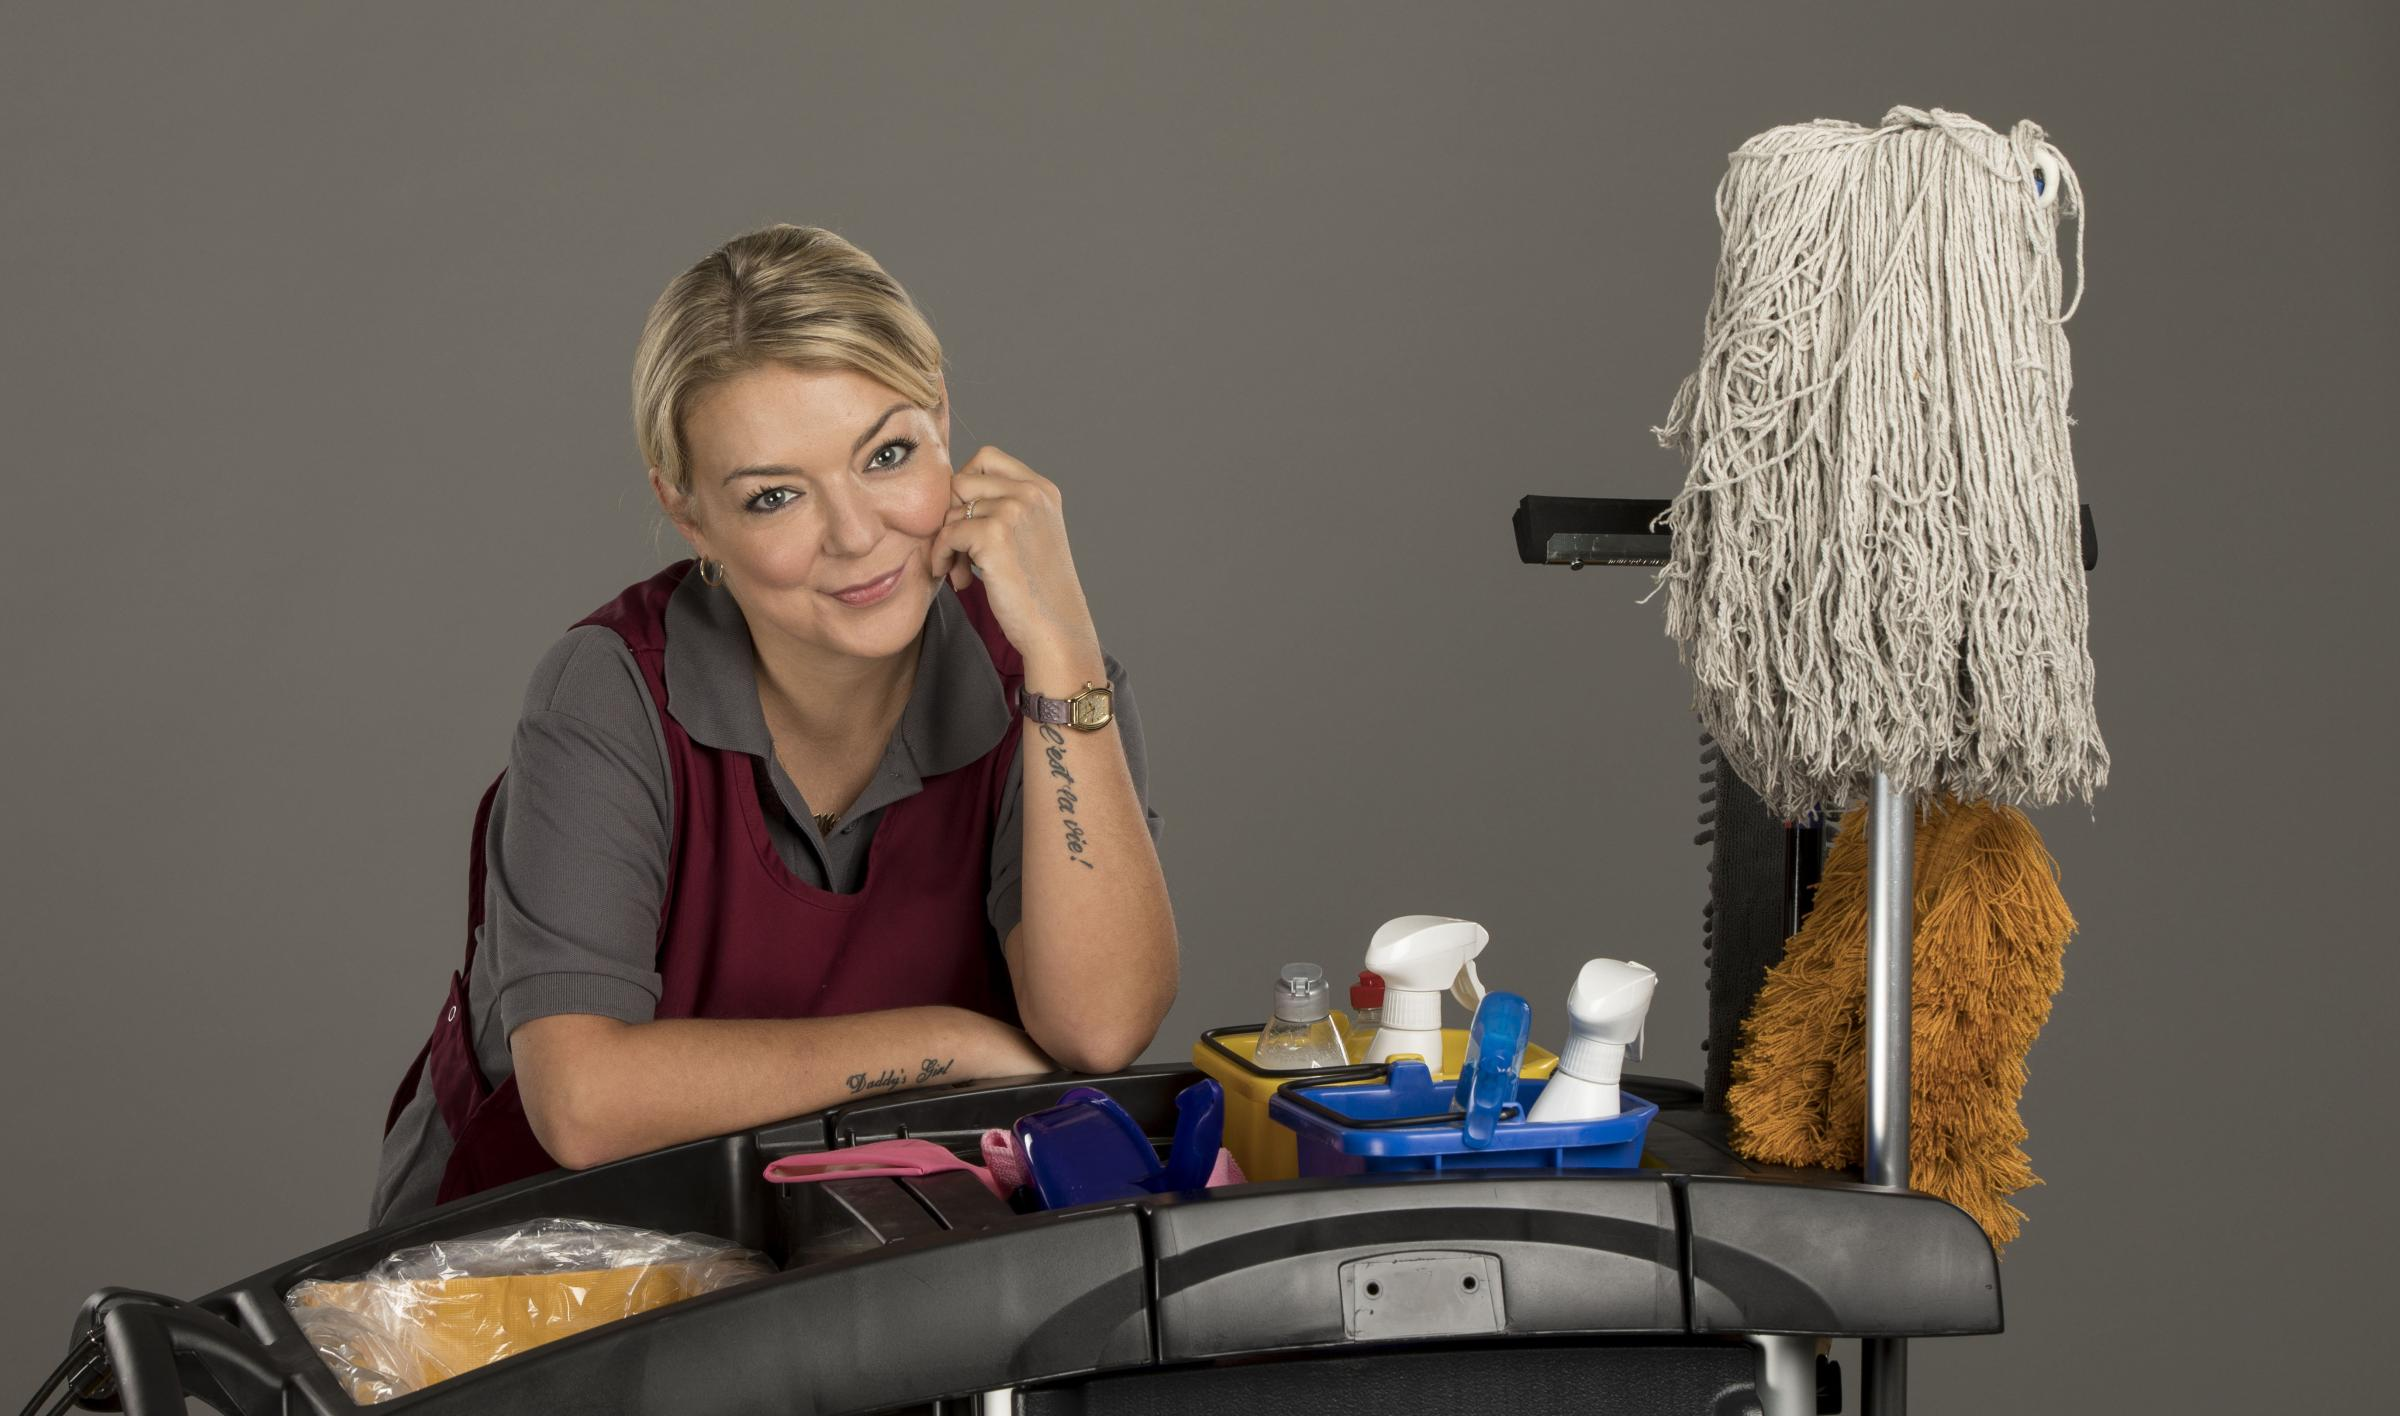 Sheridan Smith stars as Sam in Cleaning Up